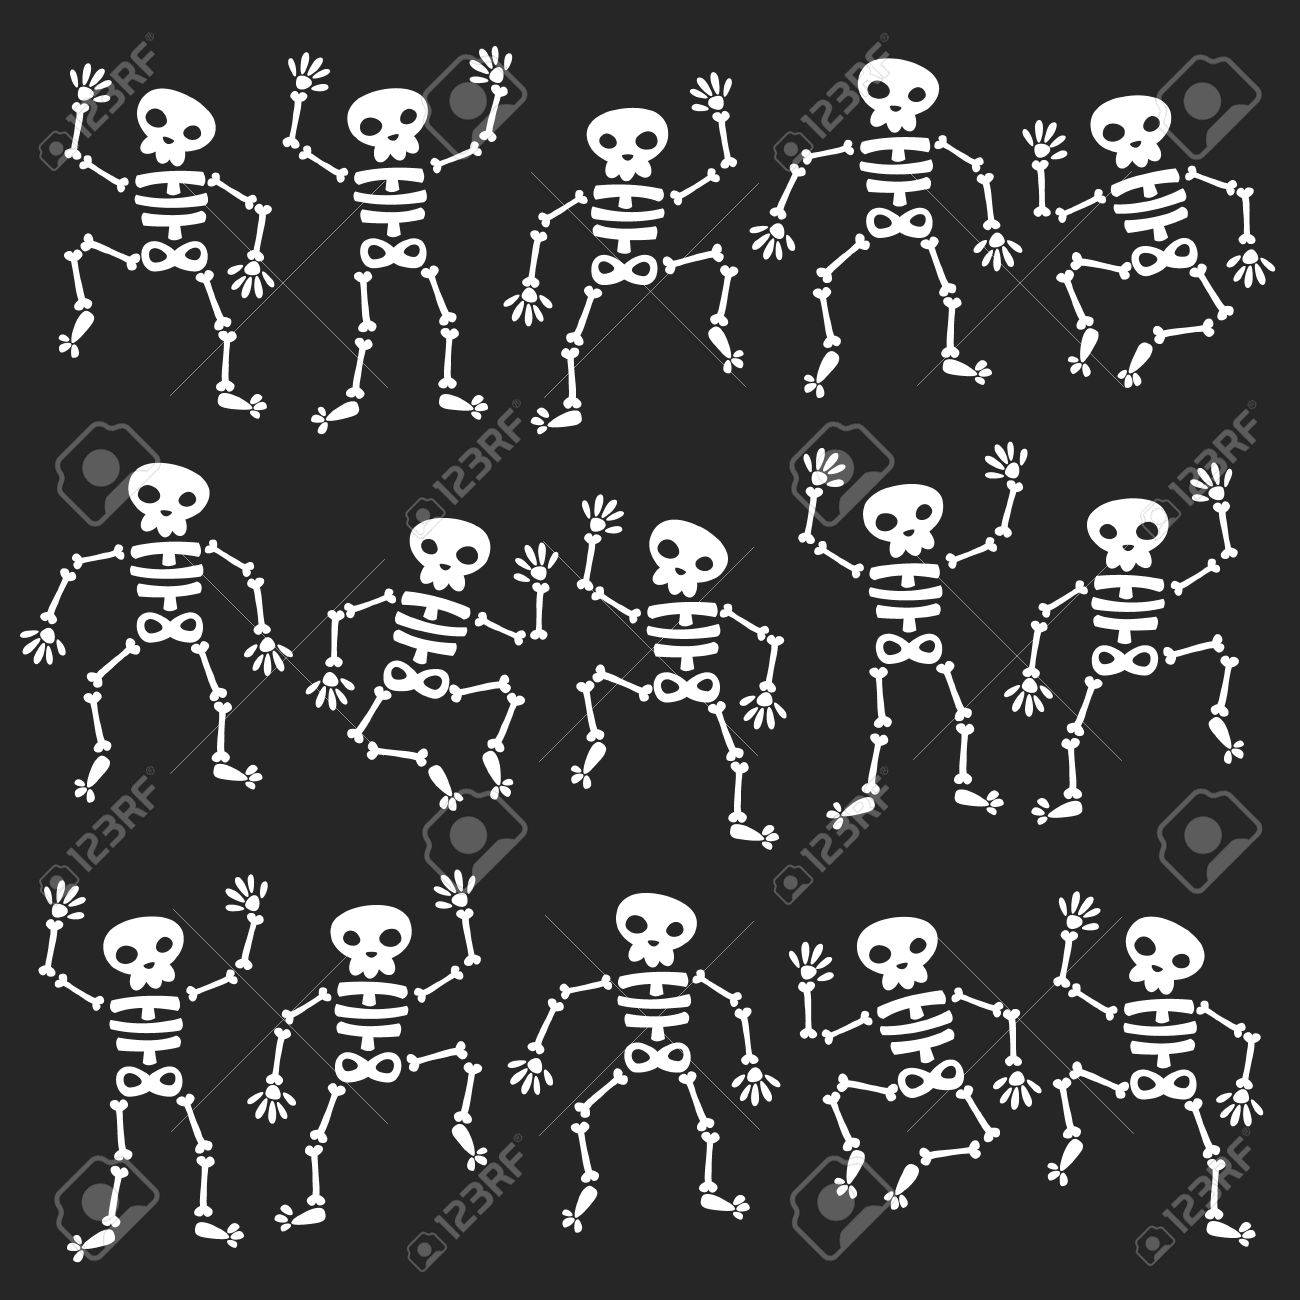 Set of dancing skeletons isolated on black - 44871277